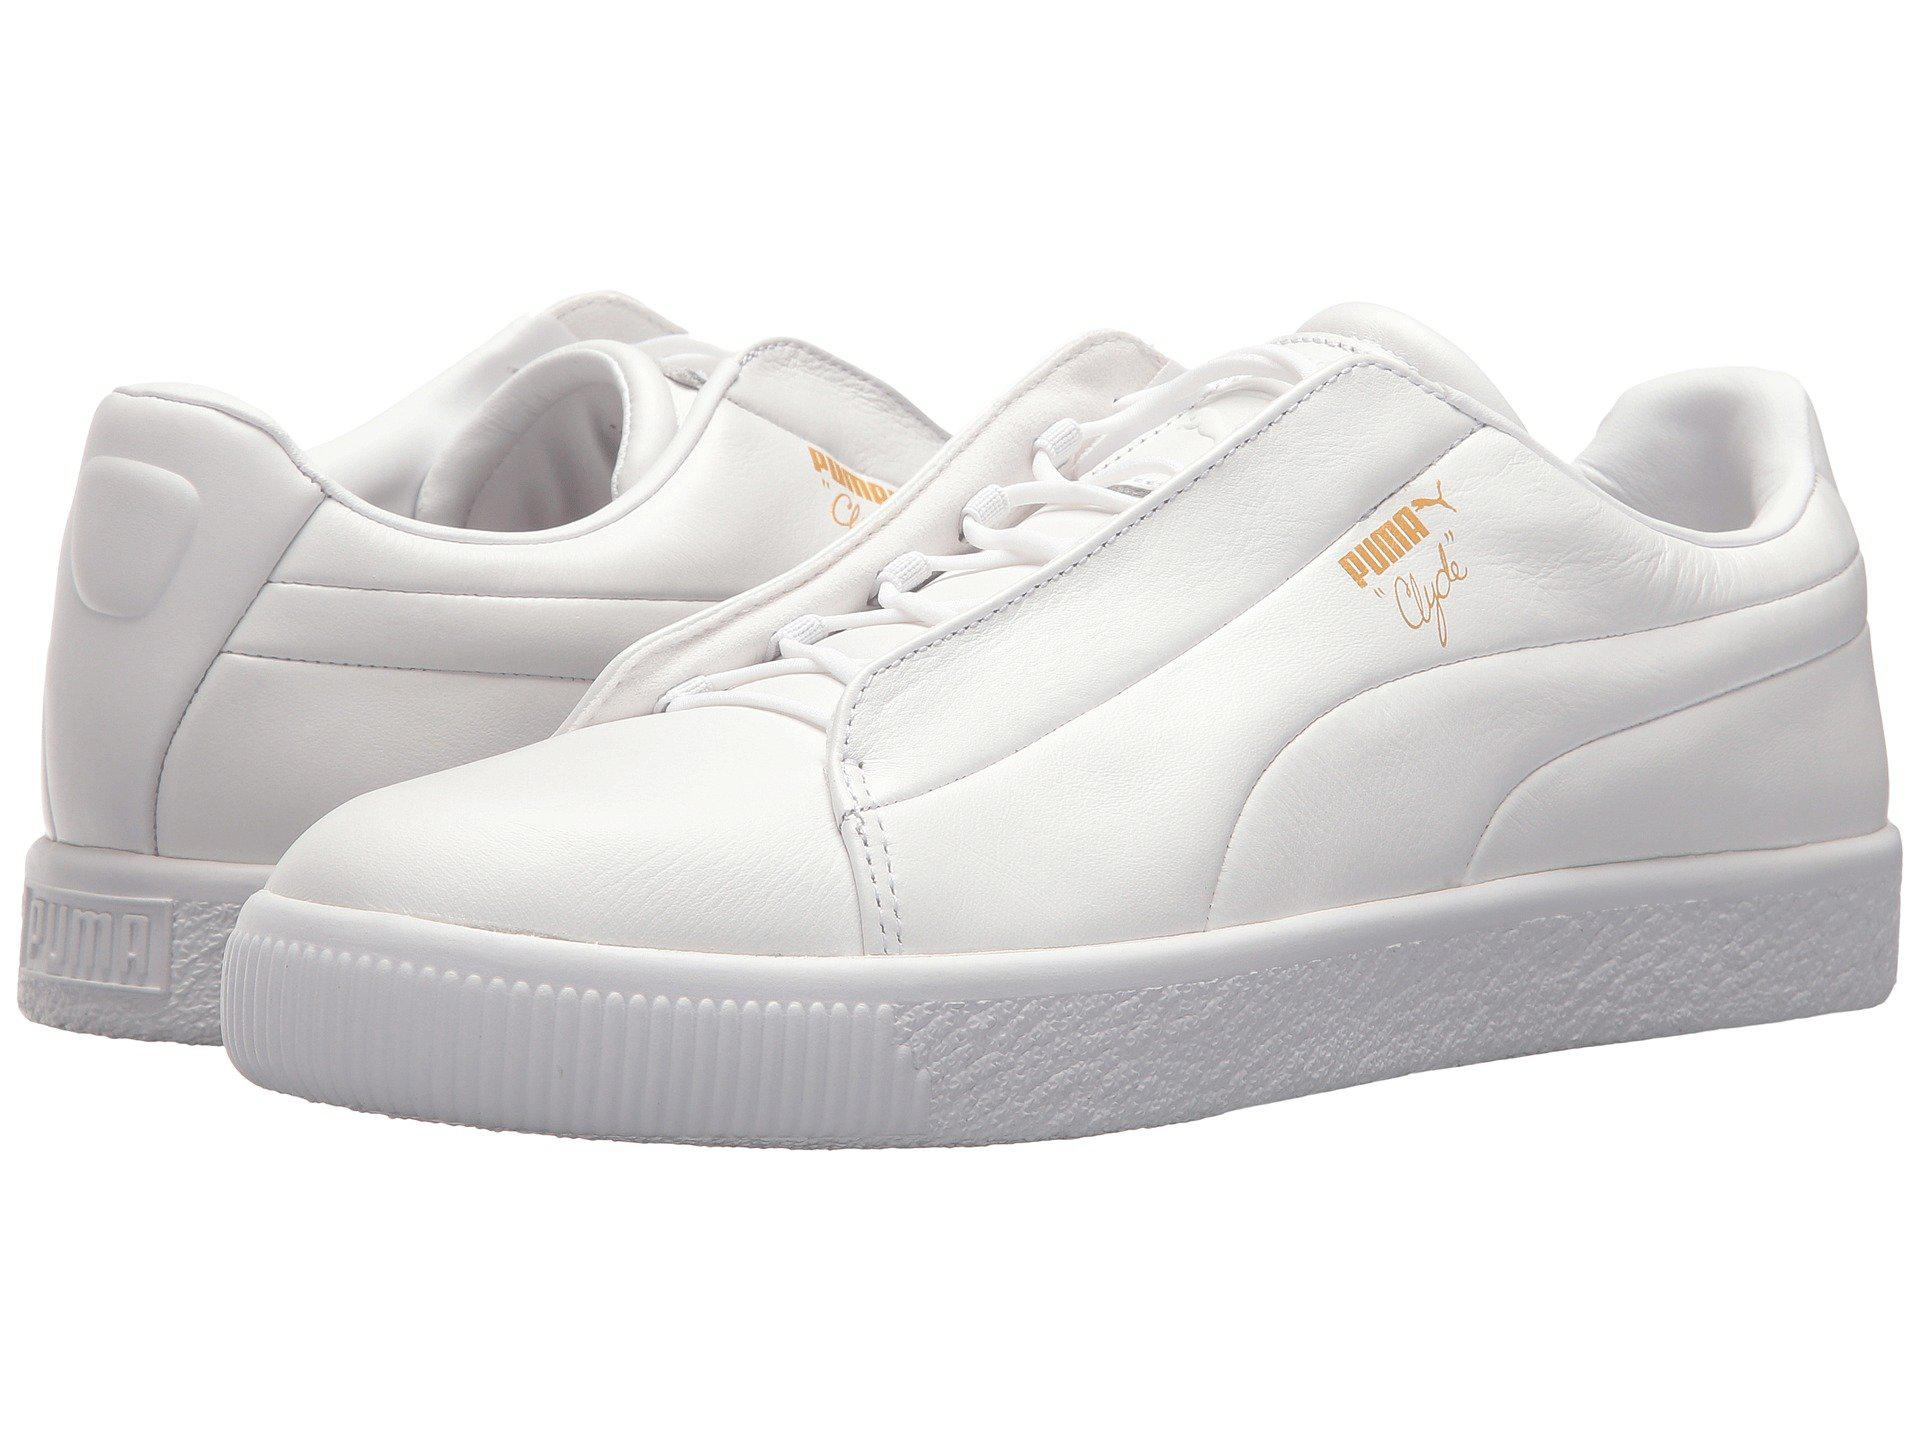 8408fc47263 Puma  Lyst - Puma Clyde Fashion Leather in White  Puma x ...